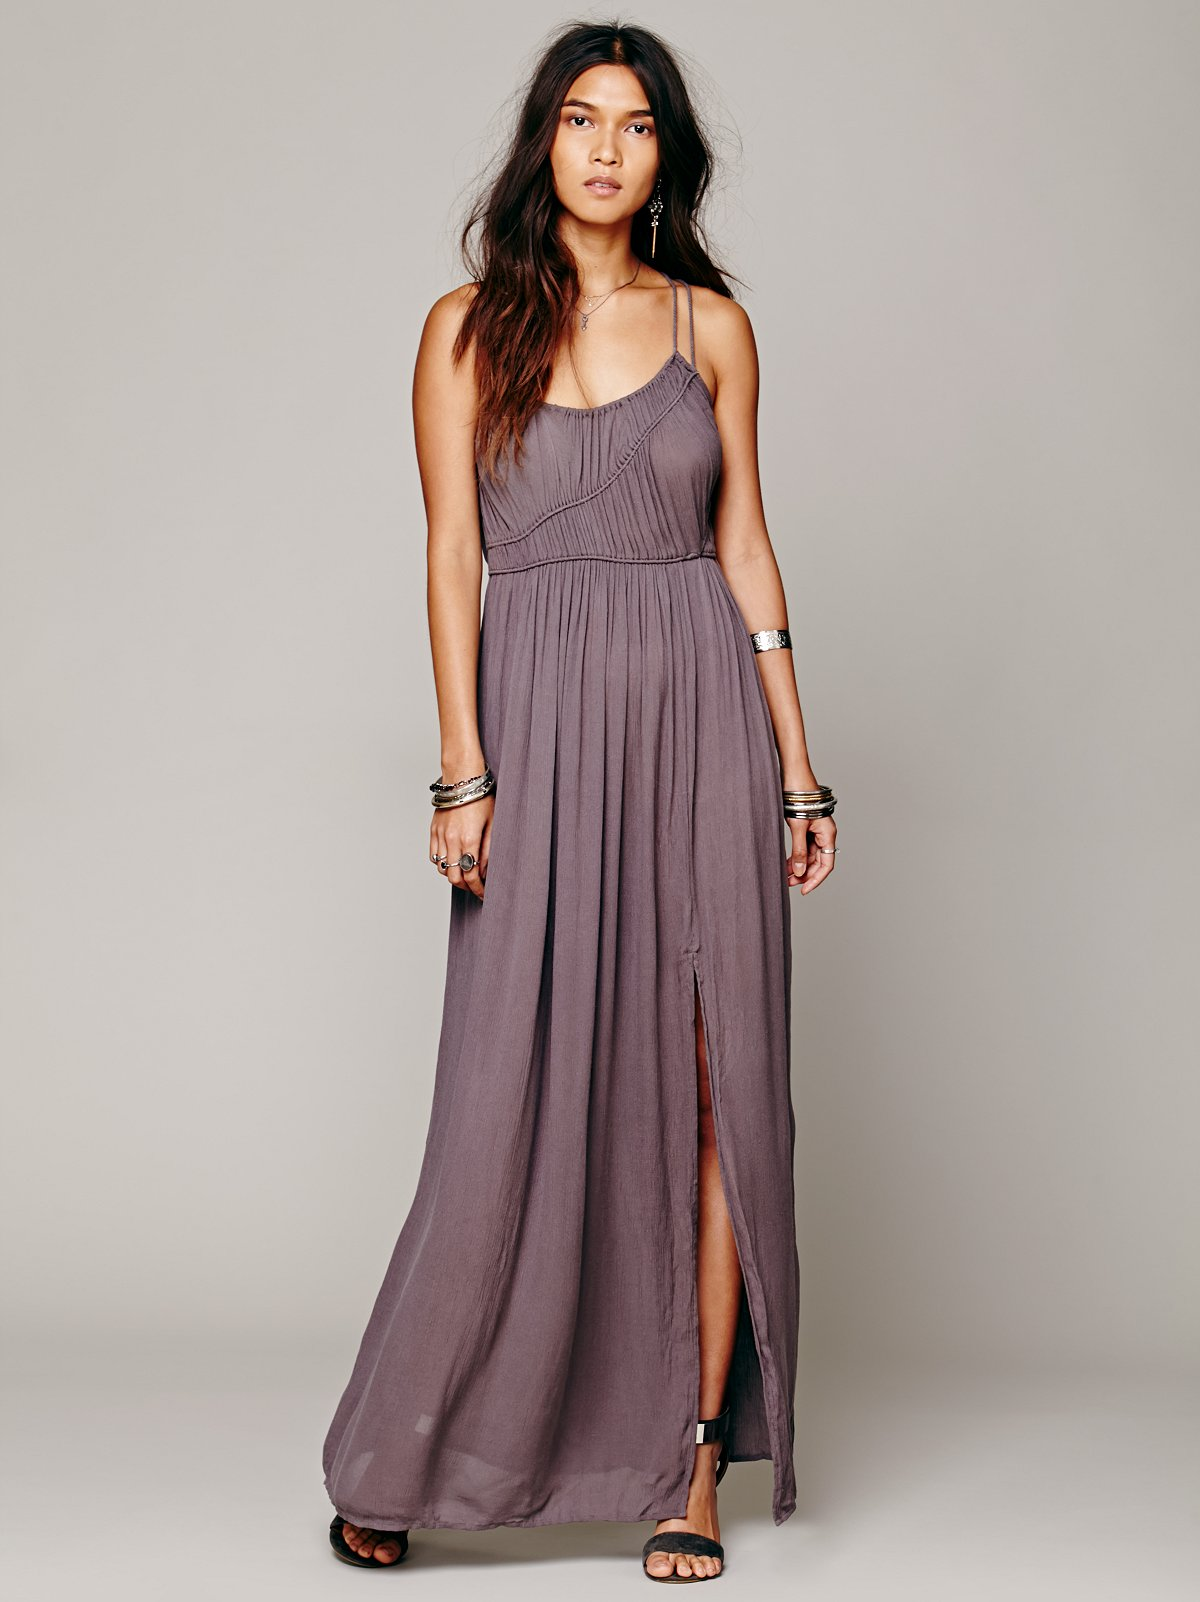 Endless Summer Grecian Love Dress